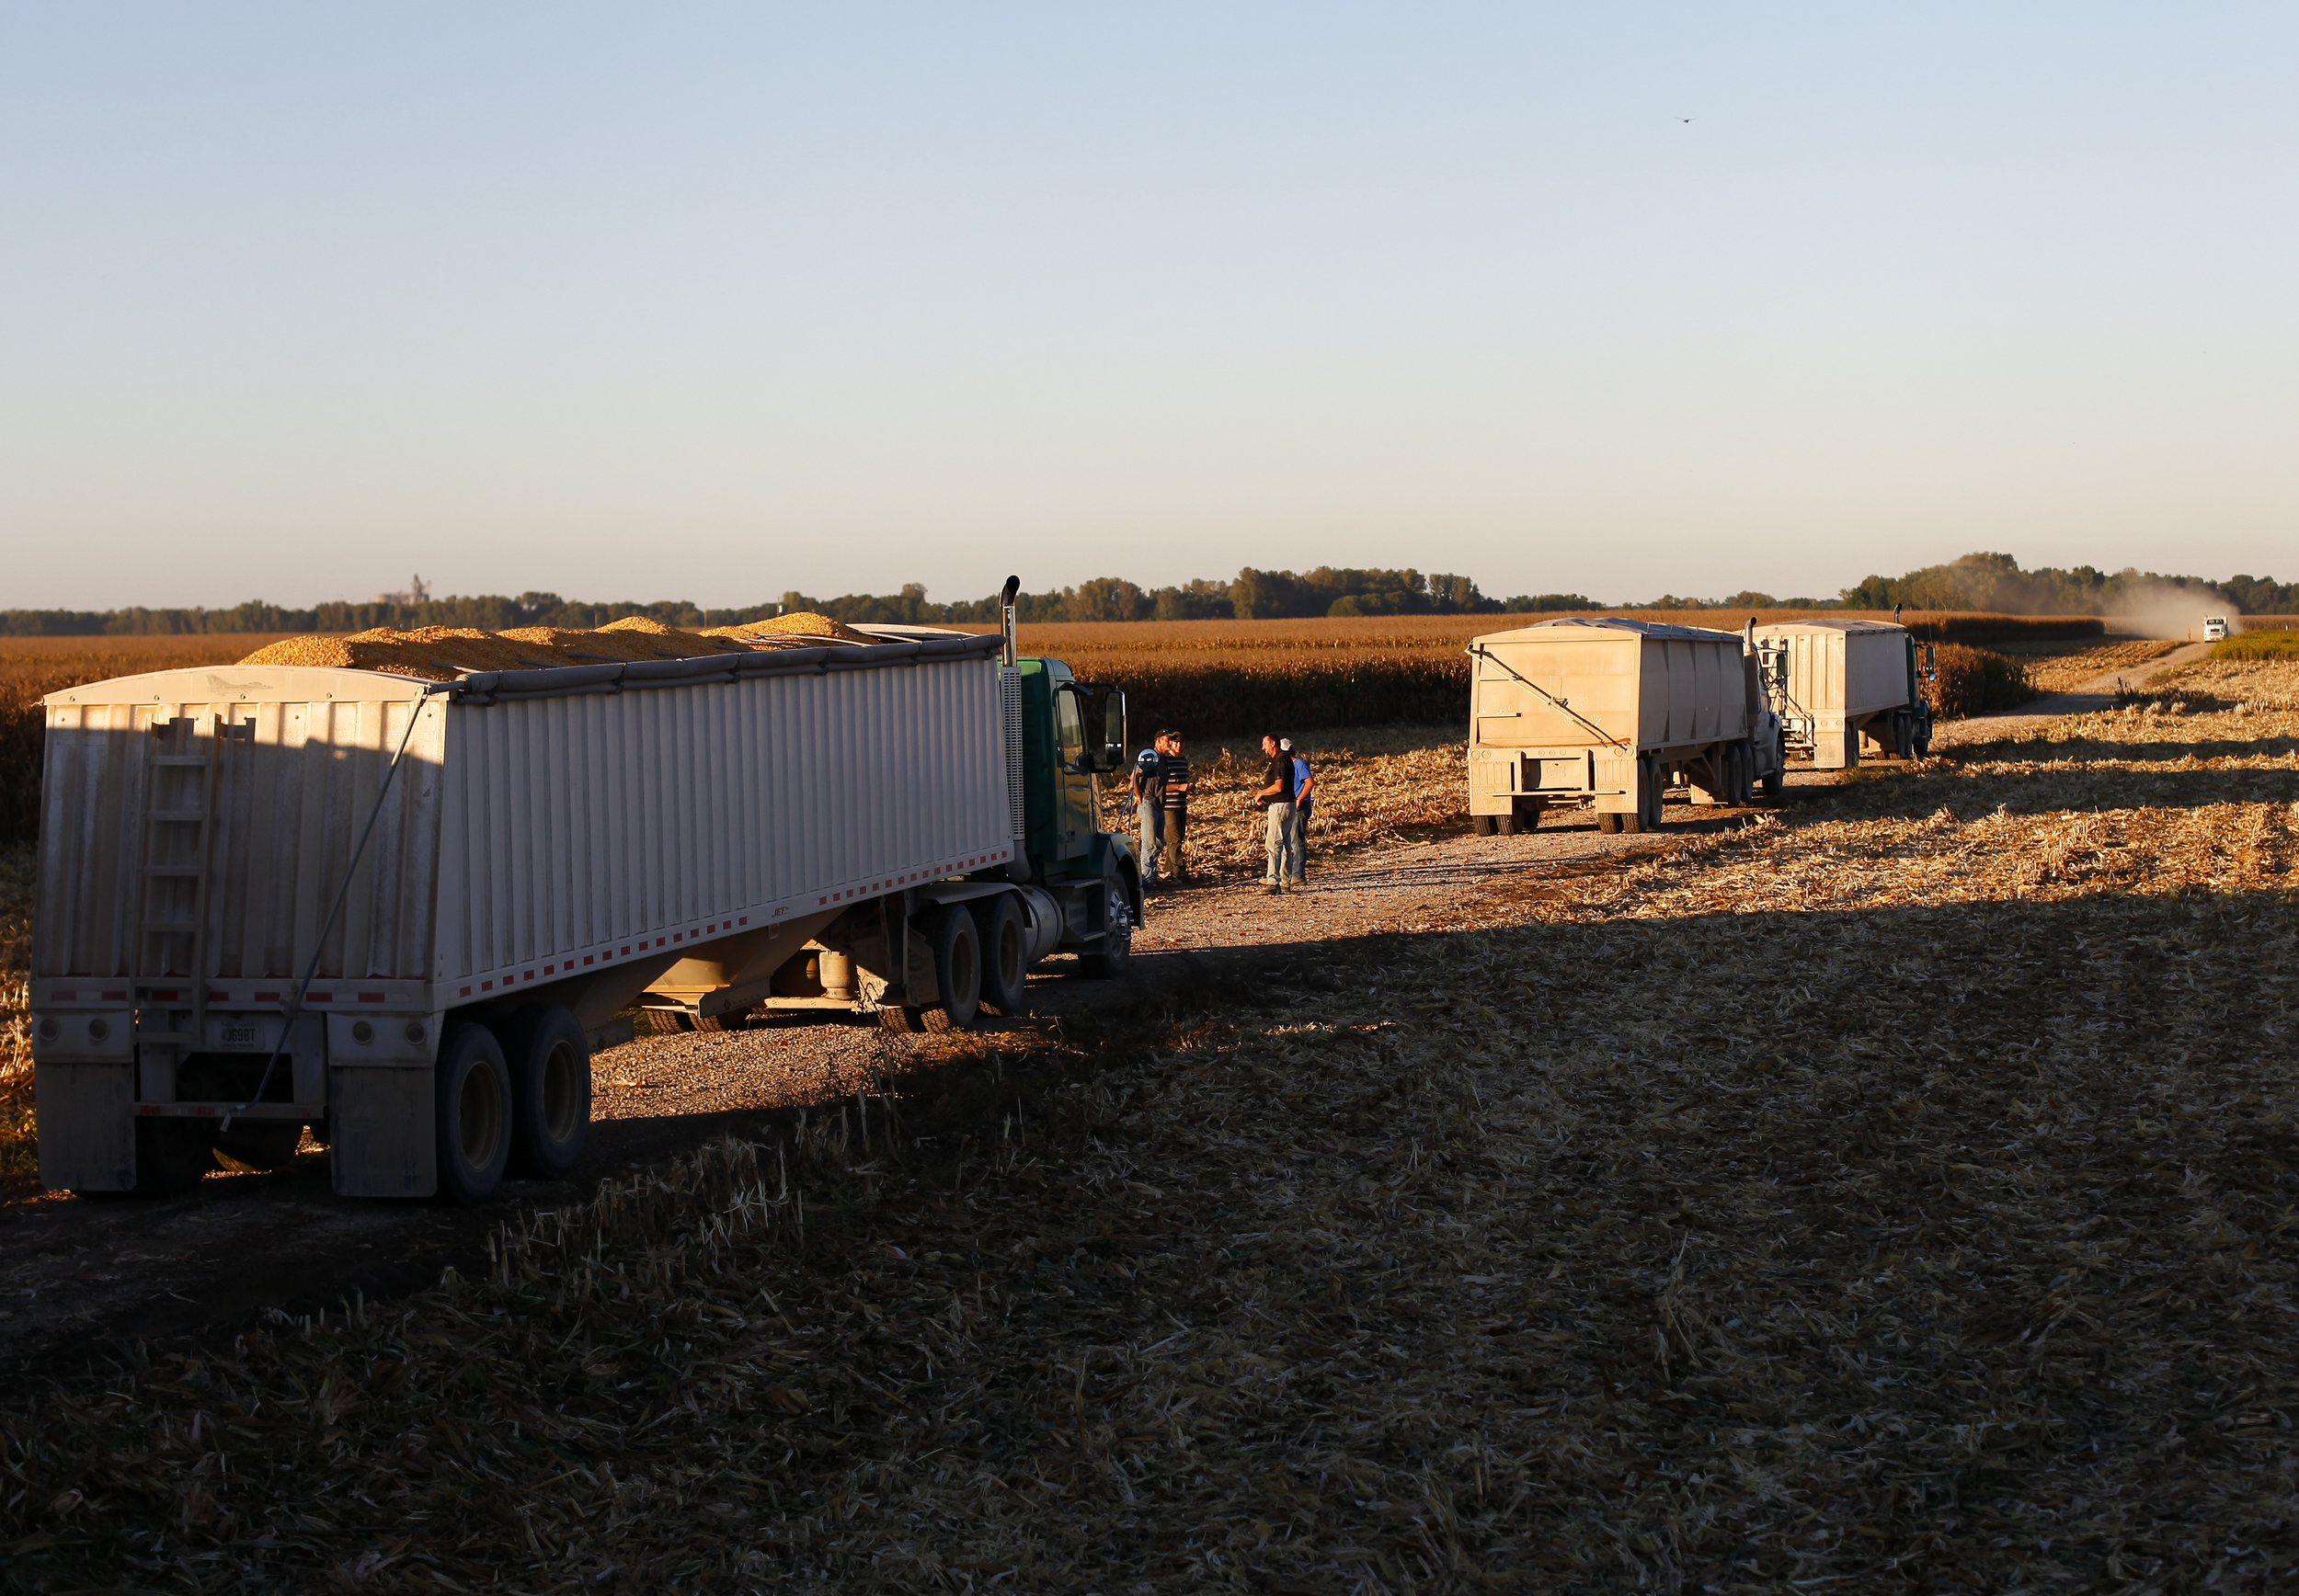 Workers wait for their trucks to be filled with the last load of corn for the day.